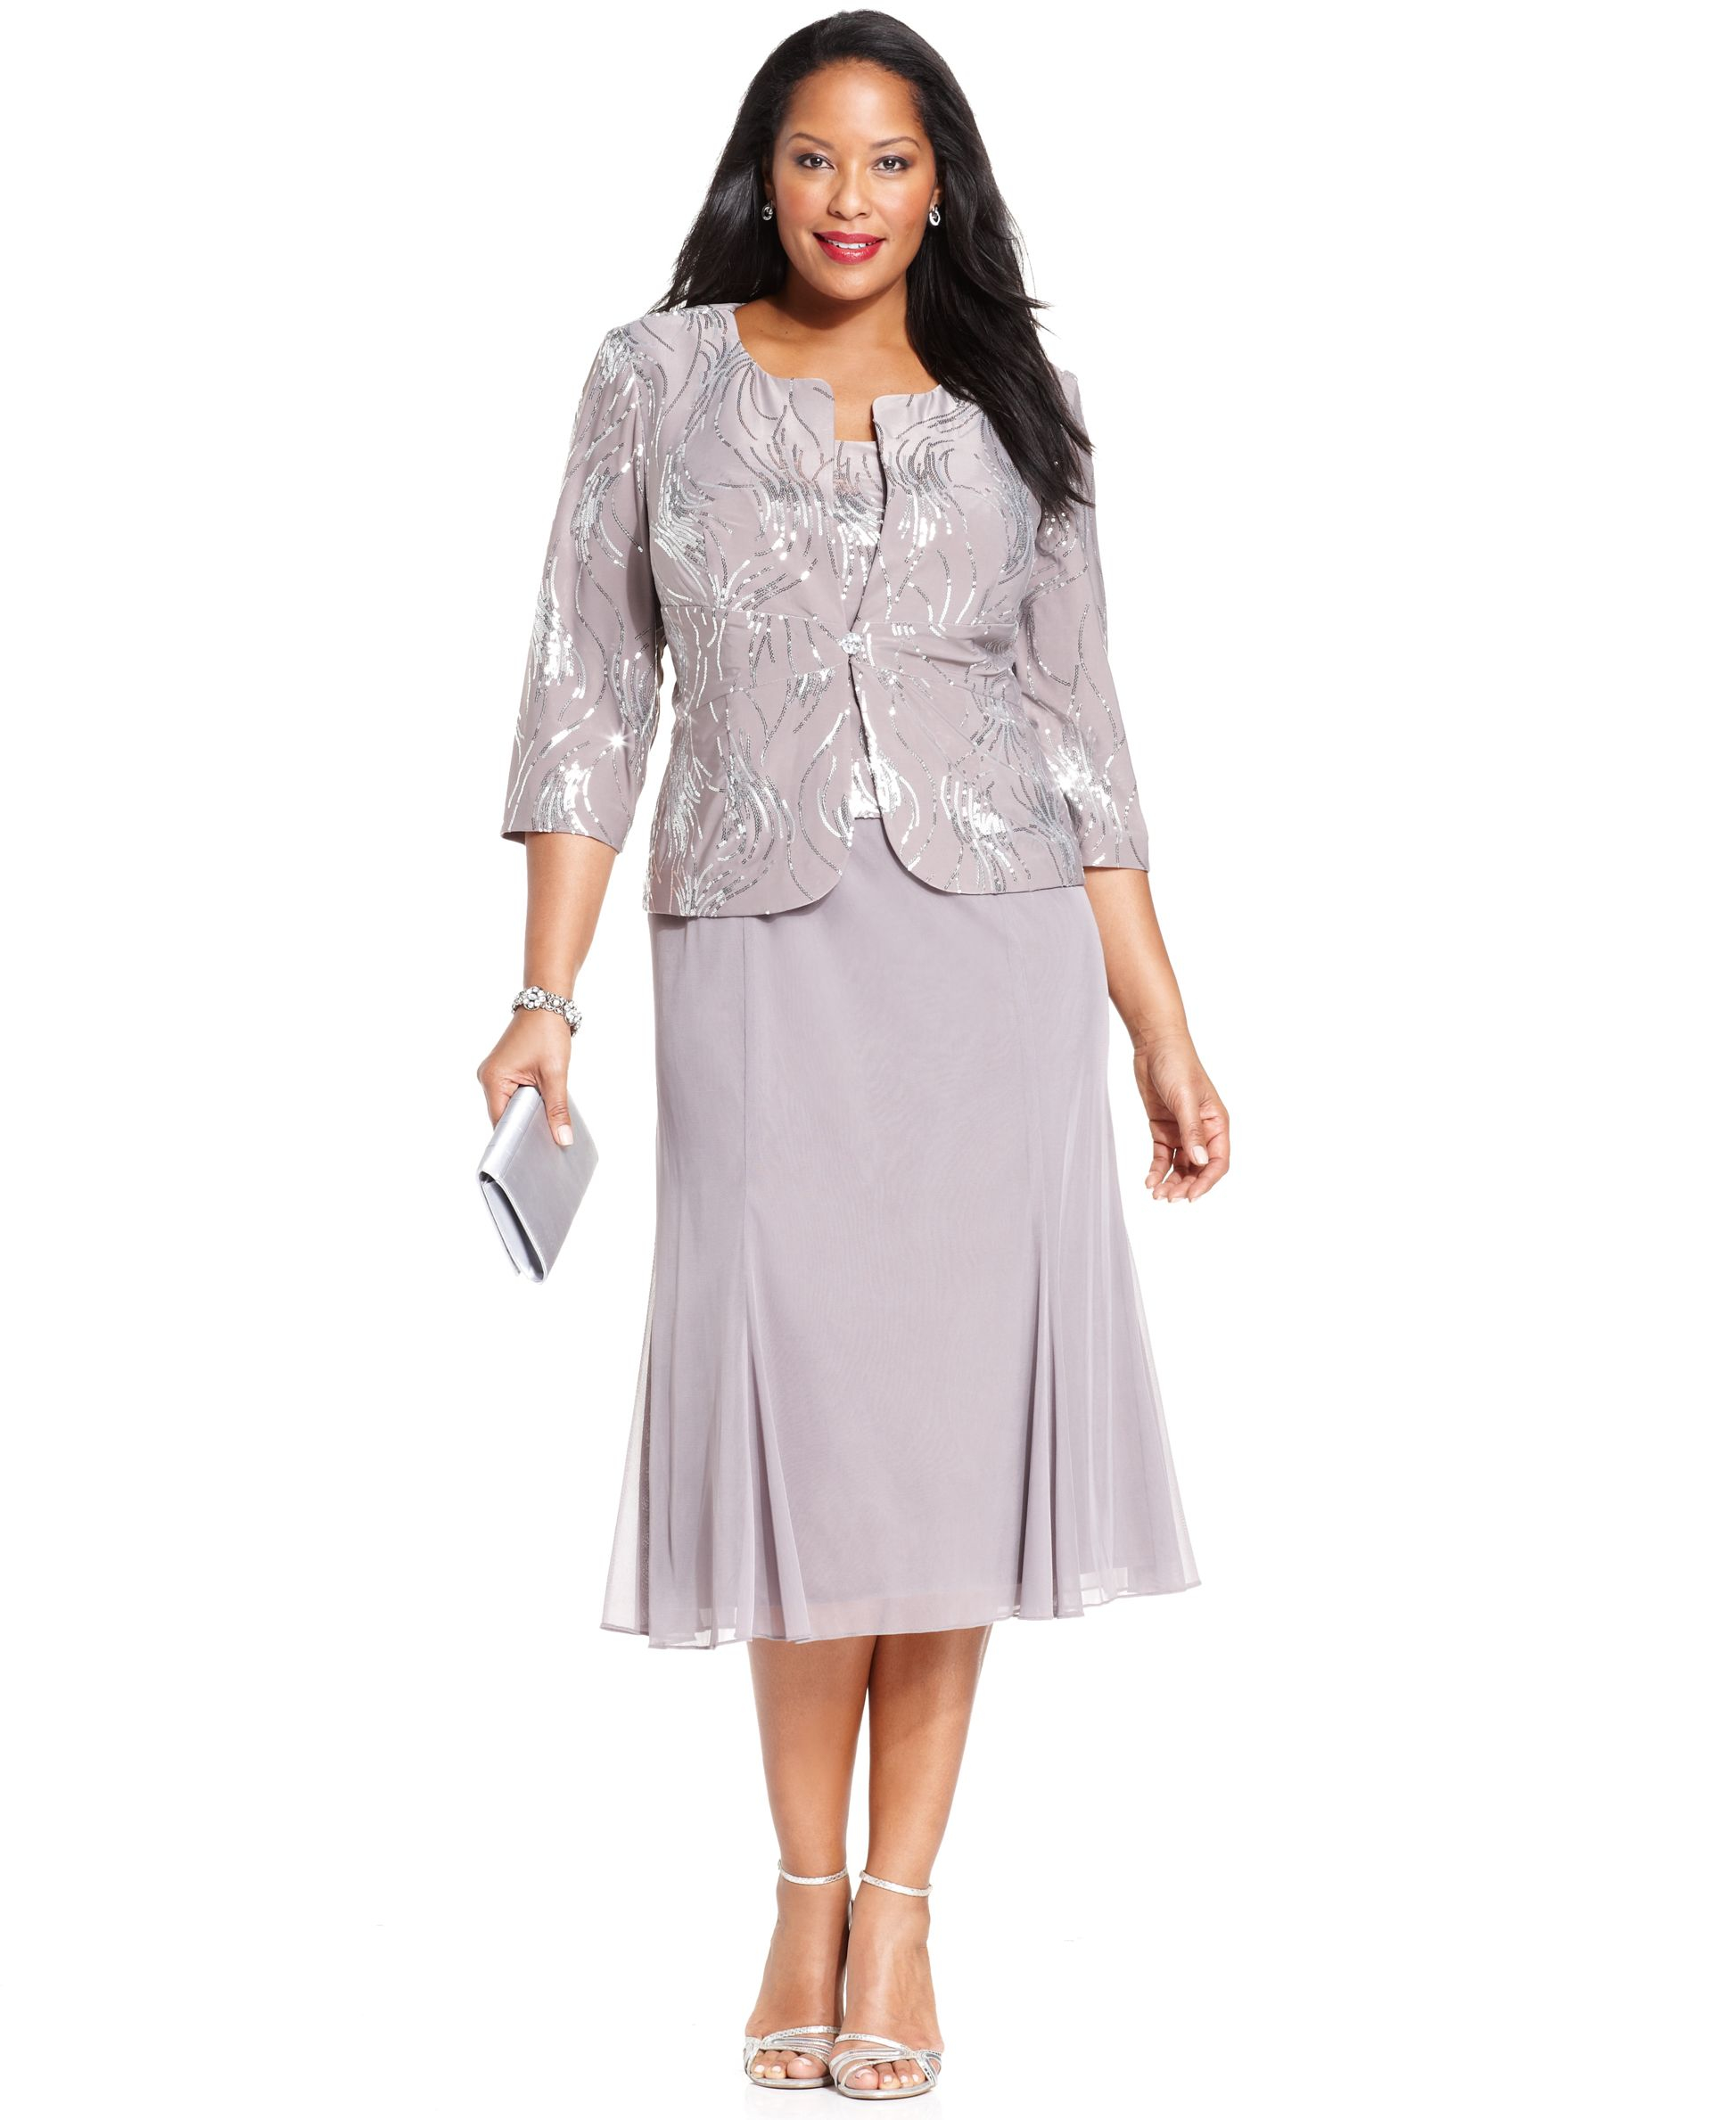 Plus Size Special Occasion Dresses With Jackets - Dress Foto and Picture